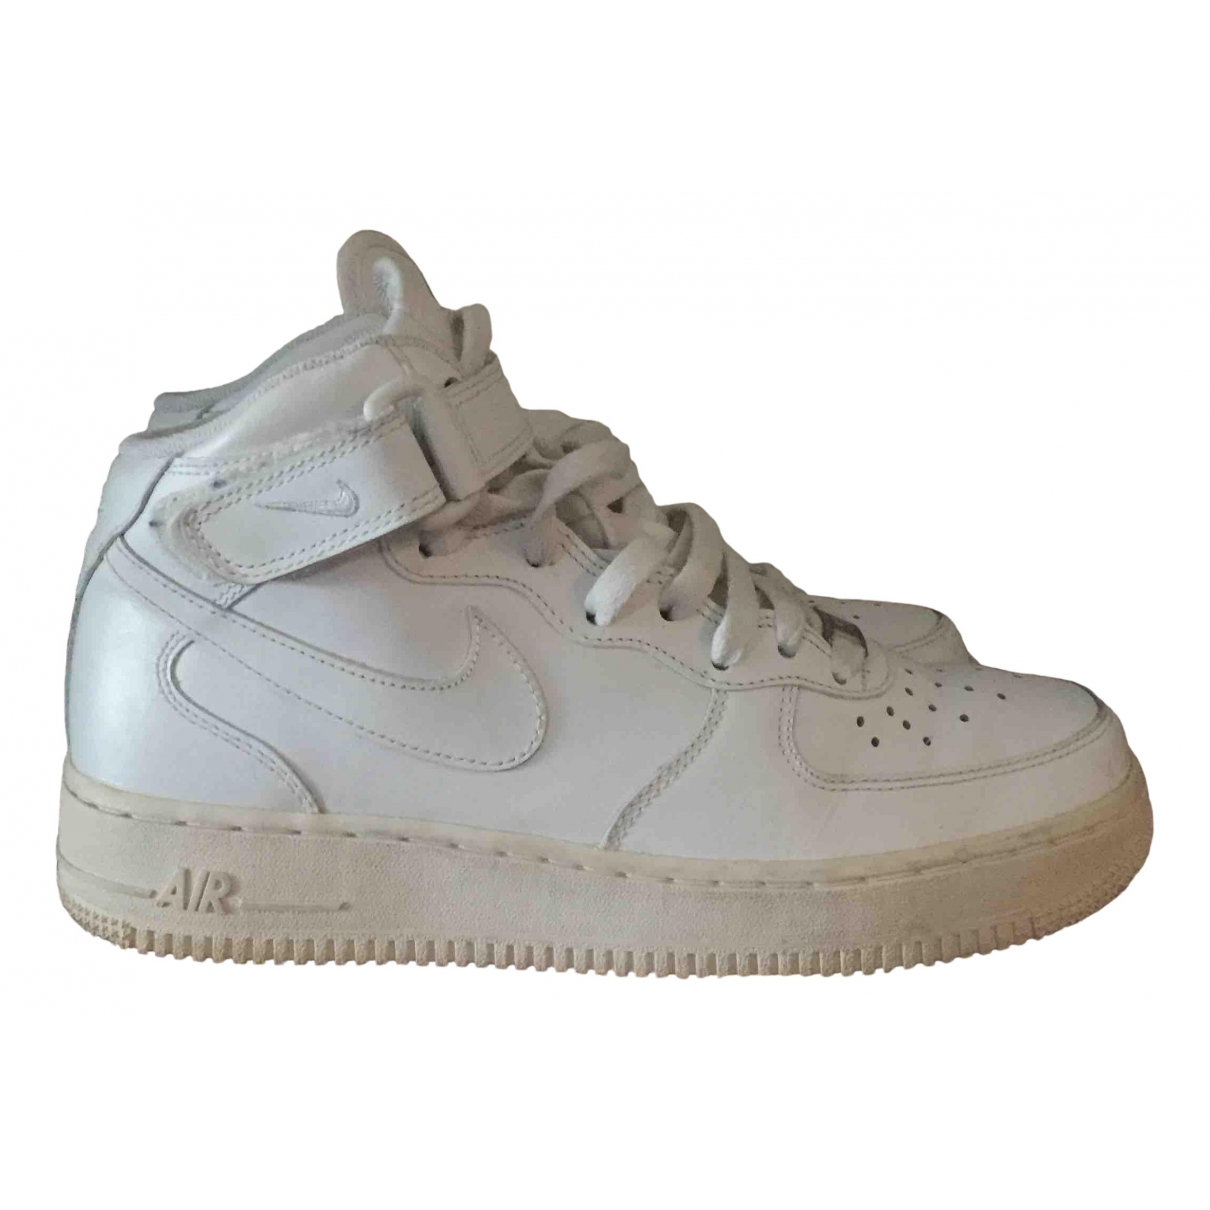 Nike Air Force 1 White Leather Trainers for Women 7 US